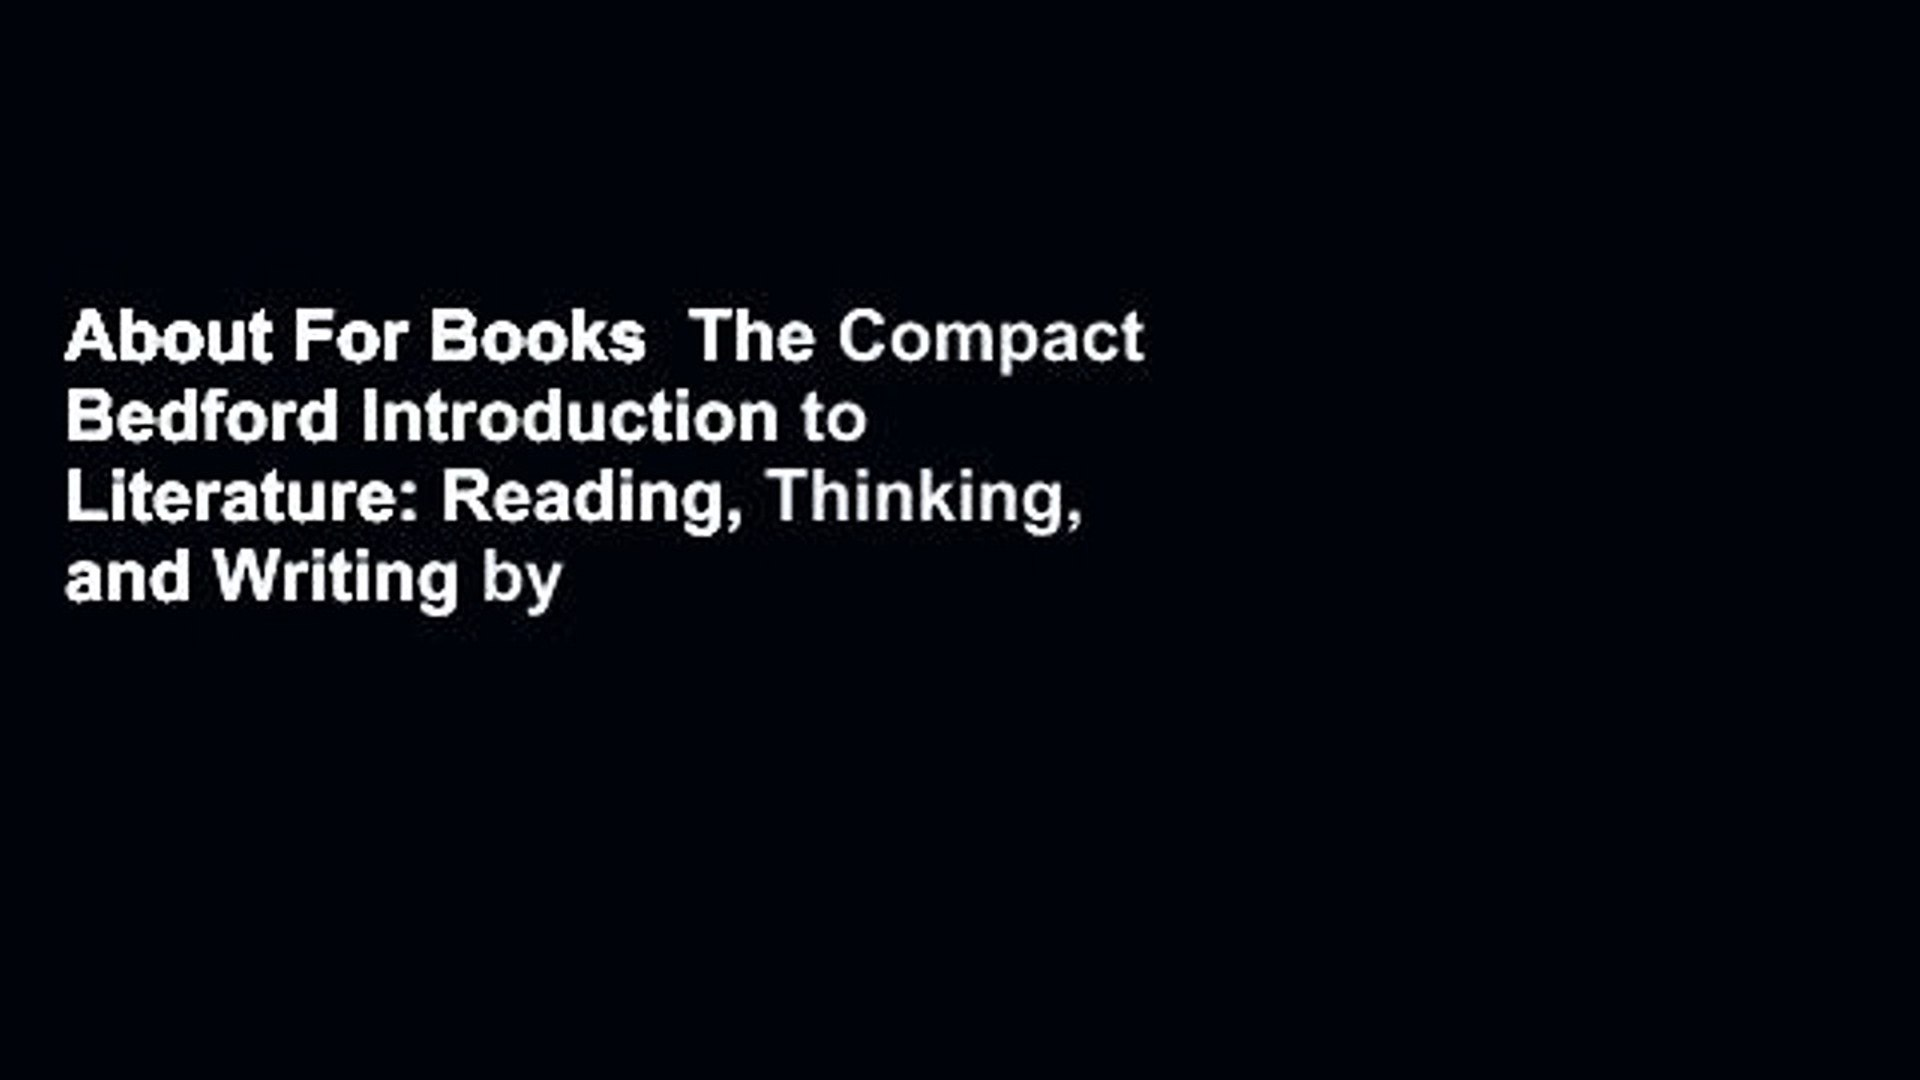 About For Books  The Compact Bedford Introduction to Literature: Reading, Thinking, and Writing by